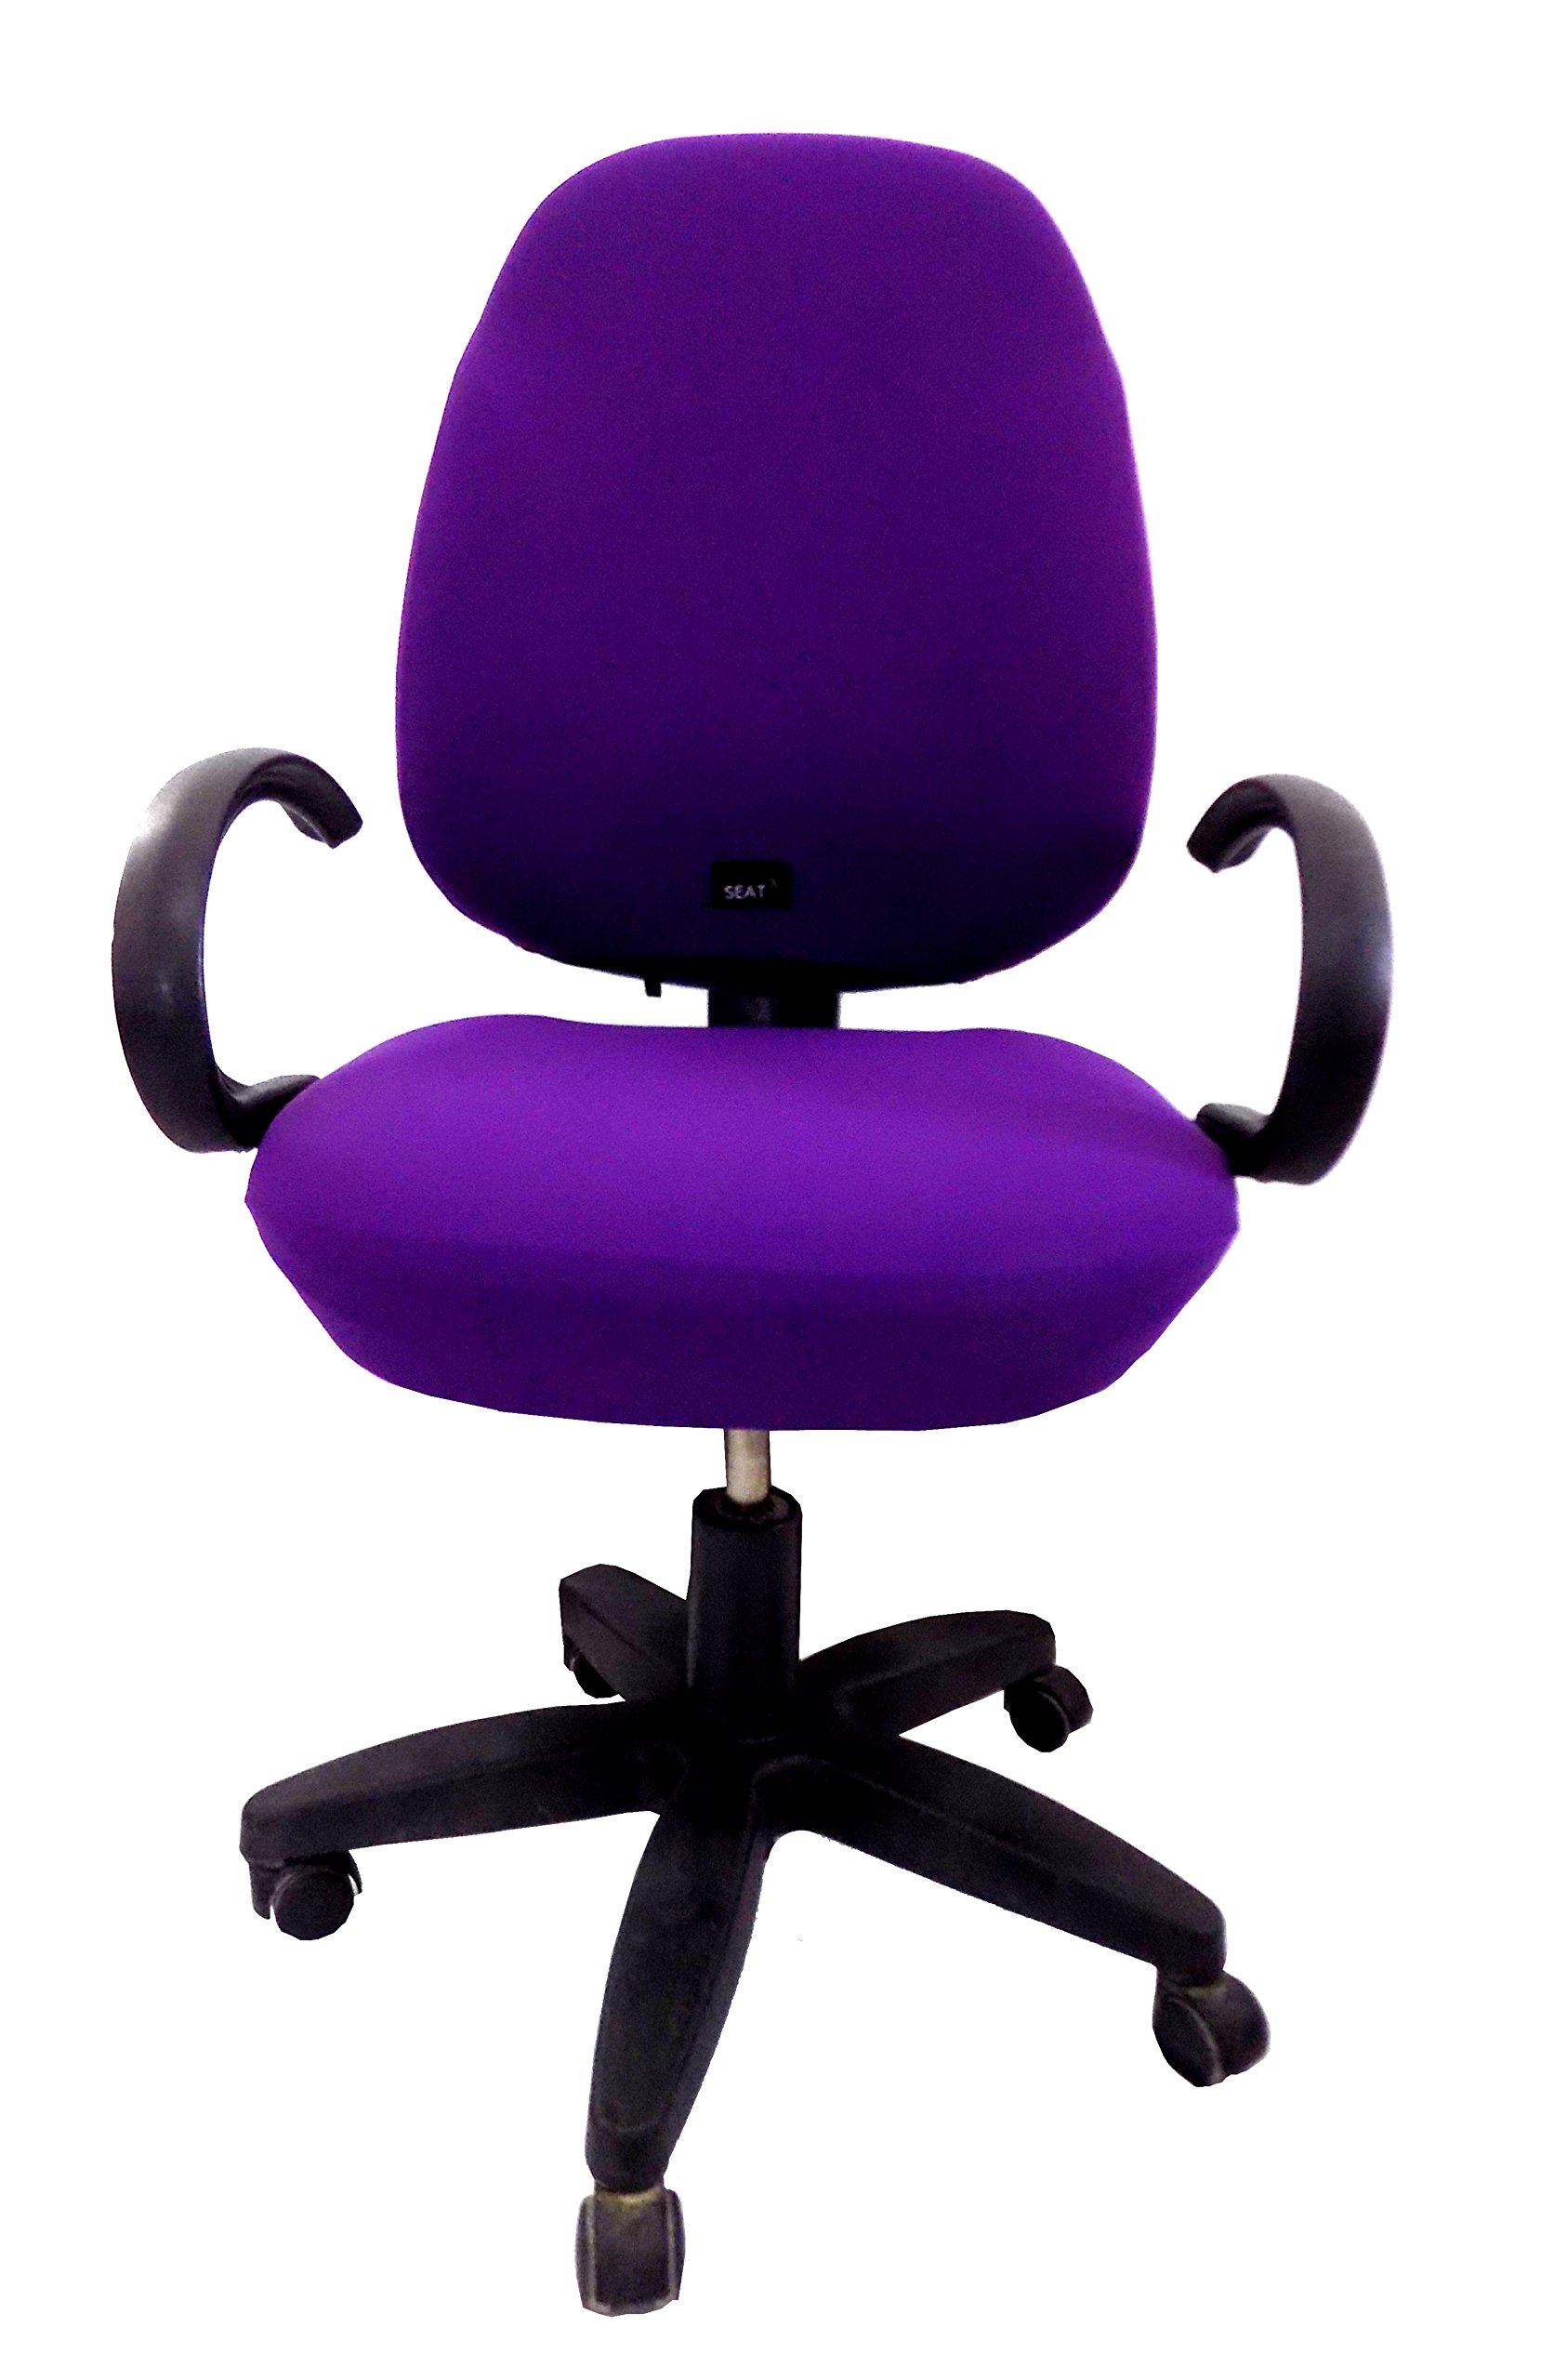 Office Chair slipcover - Seat x - one Size fit All, Adjustable Full Cover. Universal, (Purple)